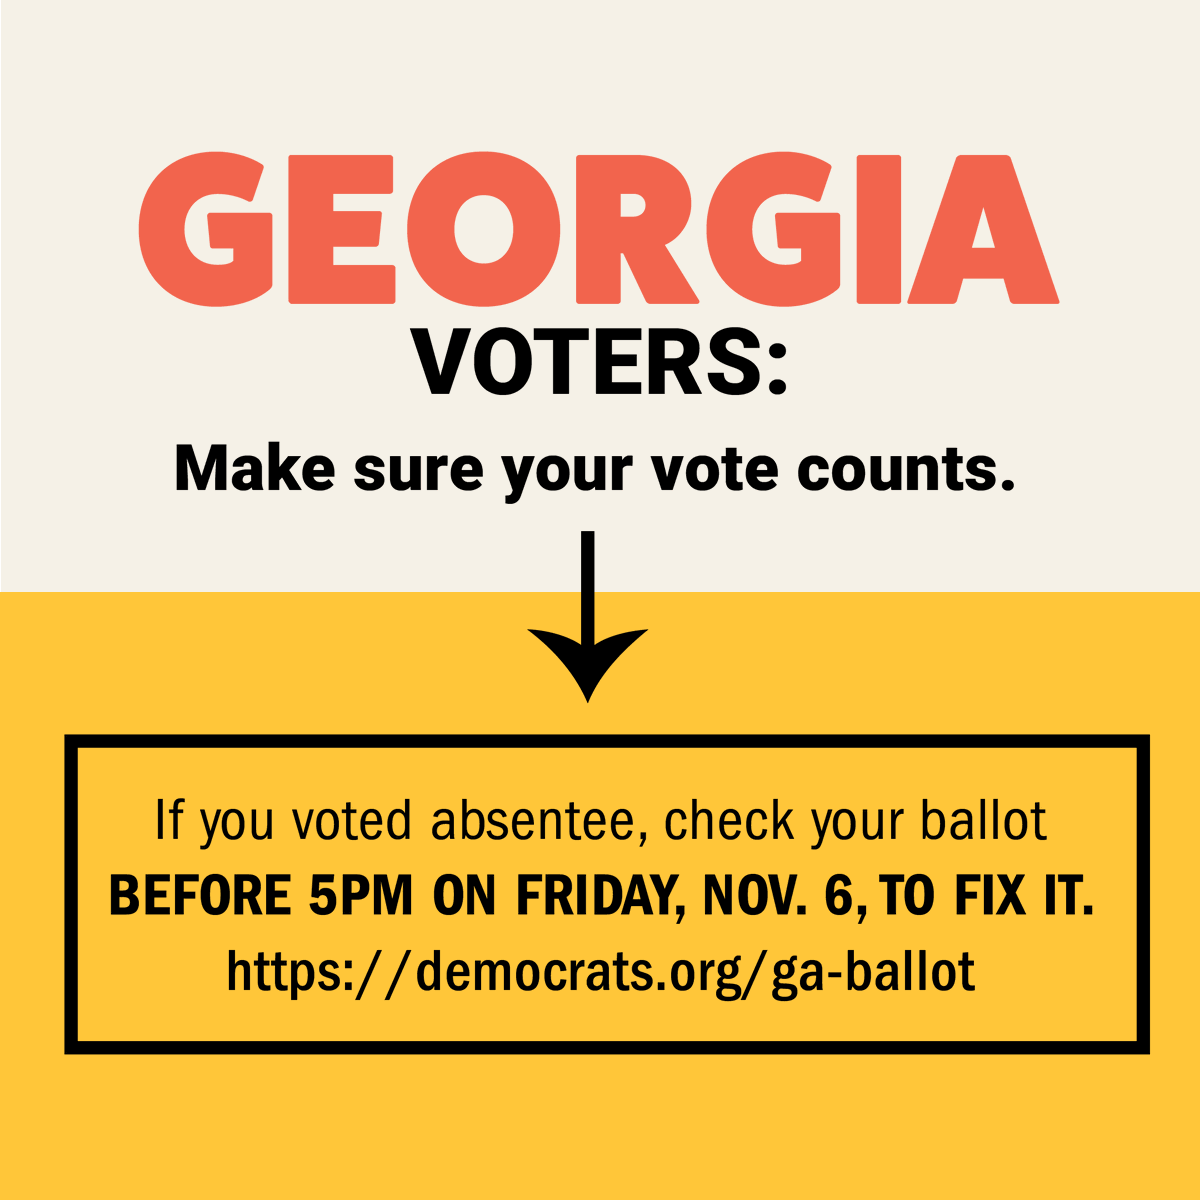 Please retweet:  Georgia voters who voted absentee: You have until 5pm today, November 6, to check the status of your ballot and fix any issues.   Make sure your vote counts.   For more information, go to .